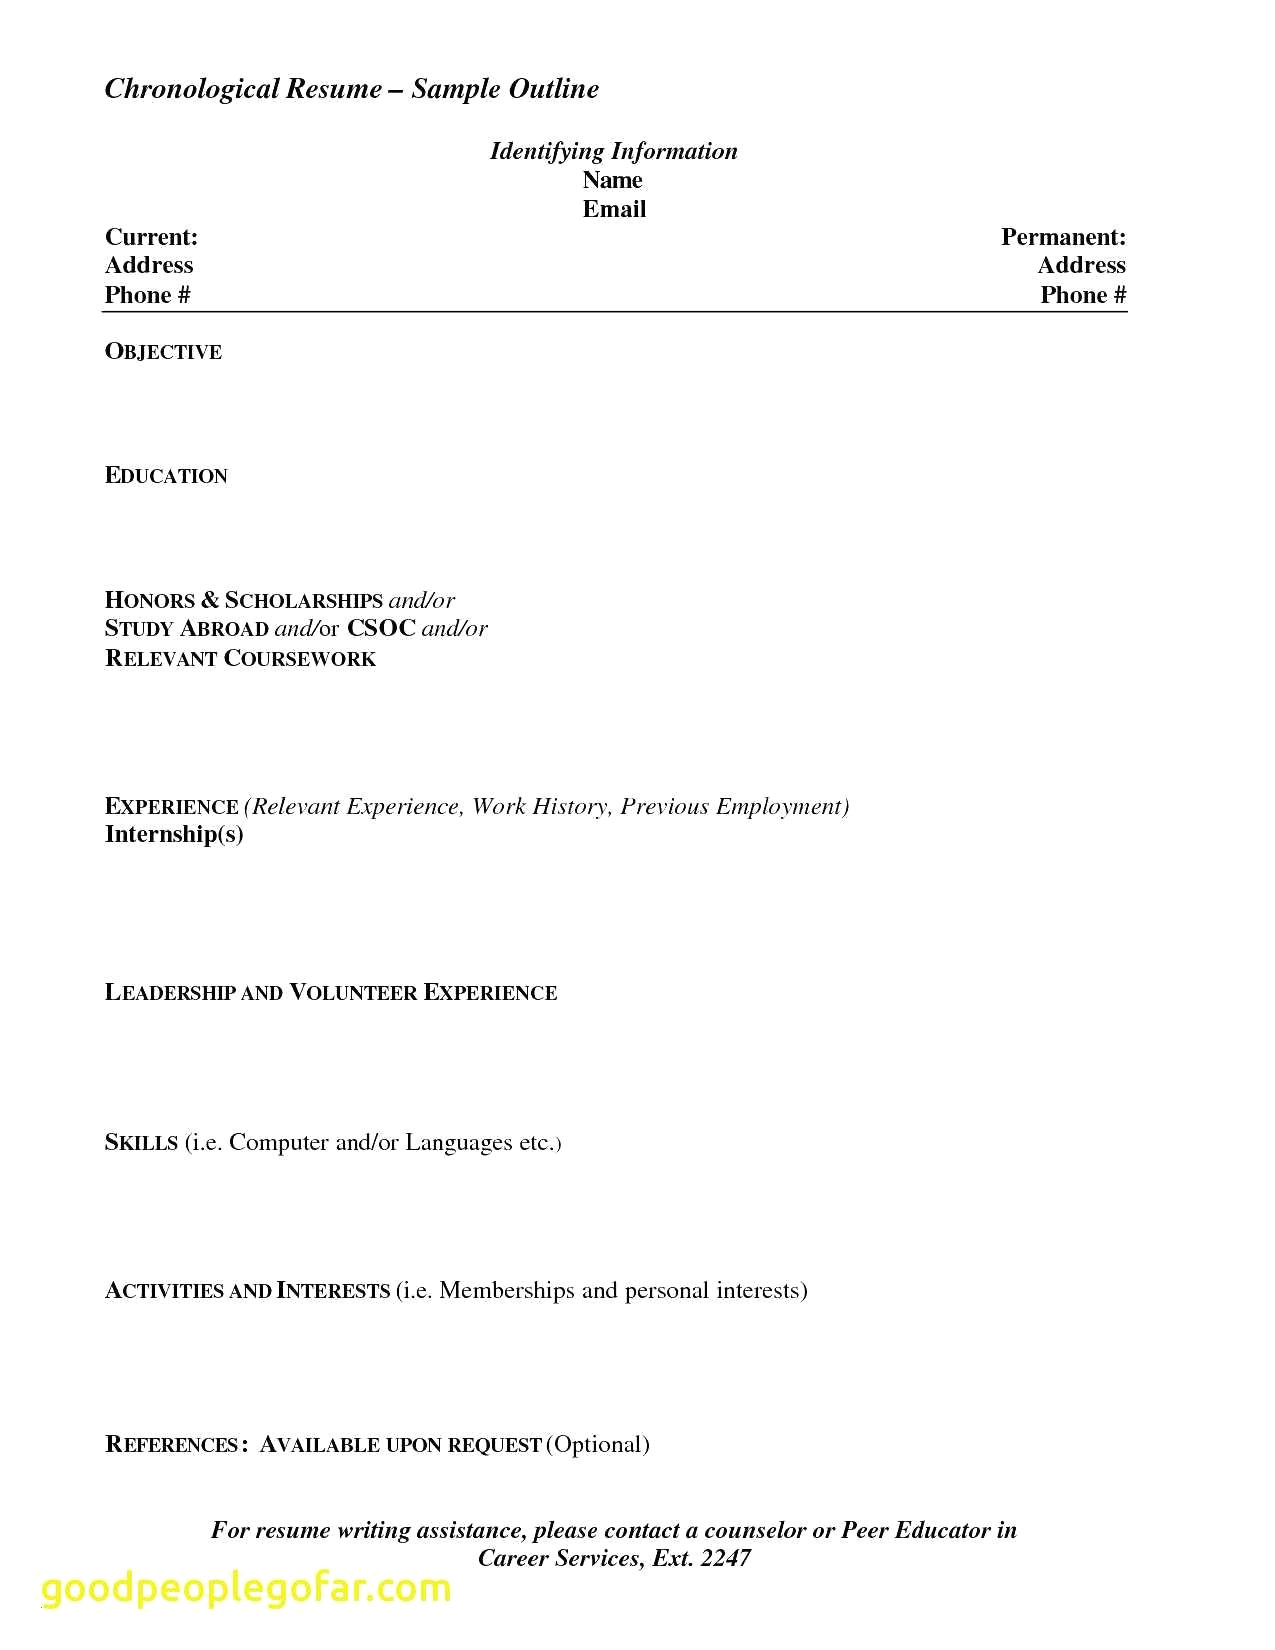 military resume writing example-Example Military Resume Unique Resume Building software Beautiful Military Resume 0d Aurelianmg 7-q